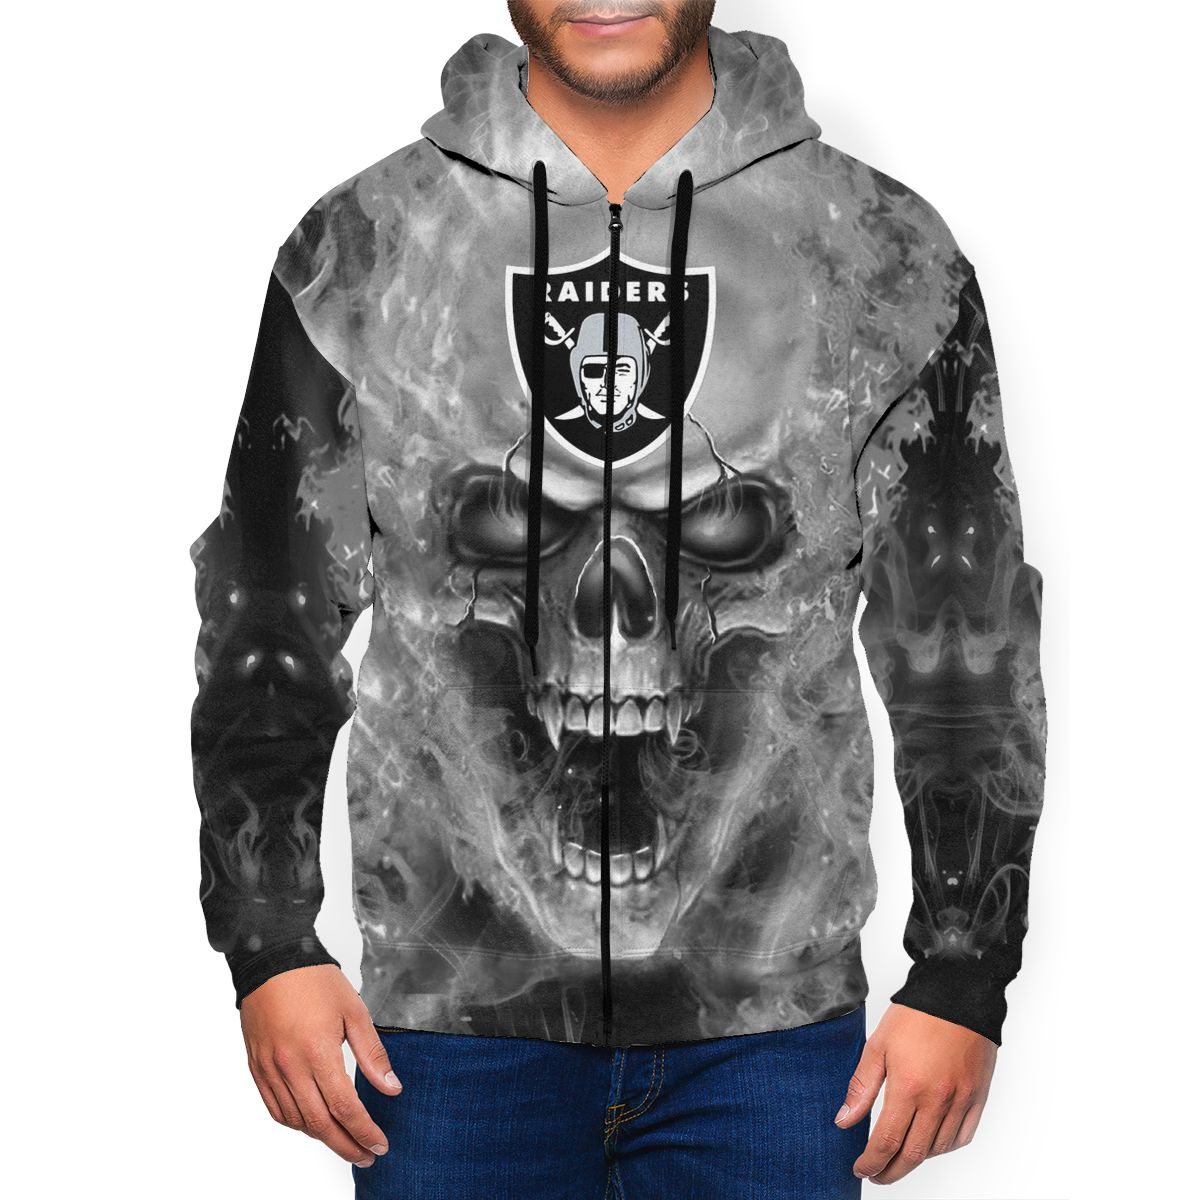 3D Skull Raiders Men's Zip Hooded Sweatshirt